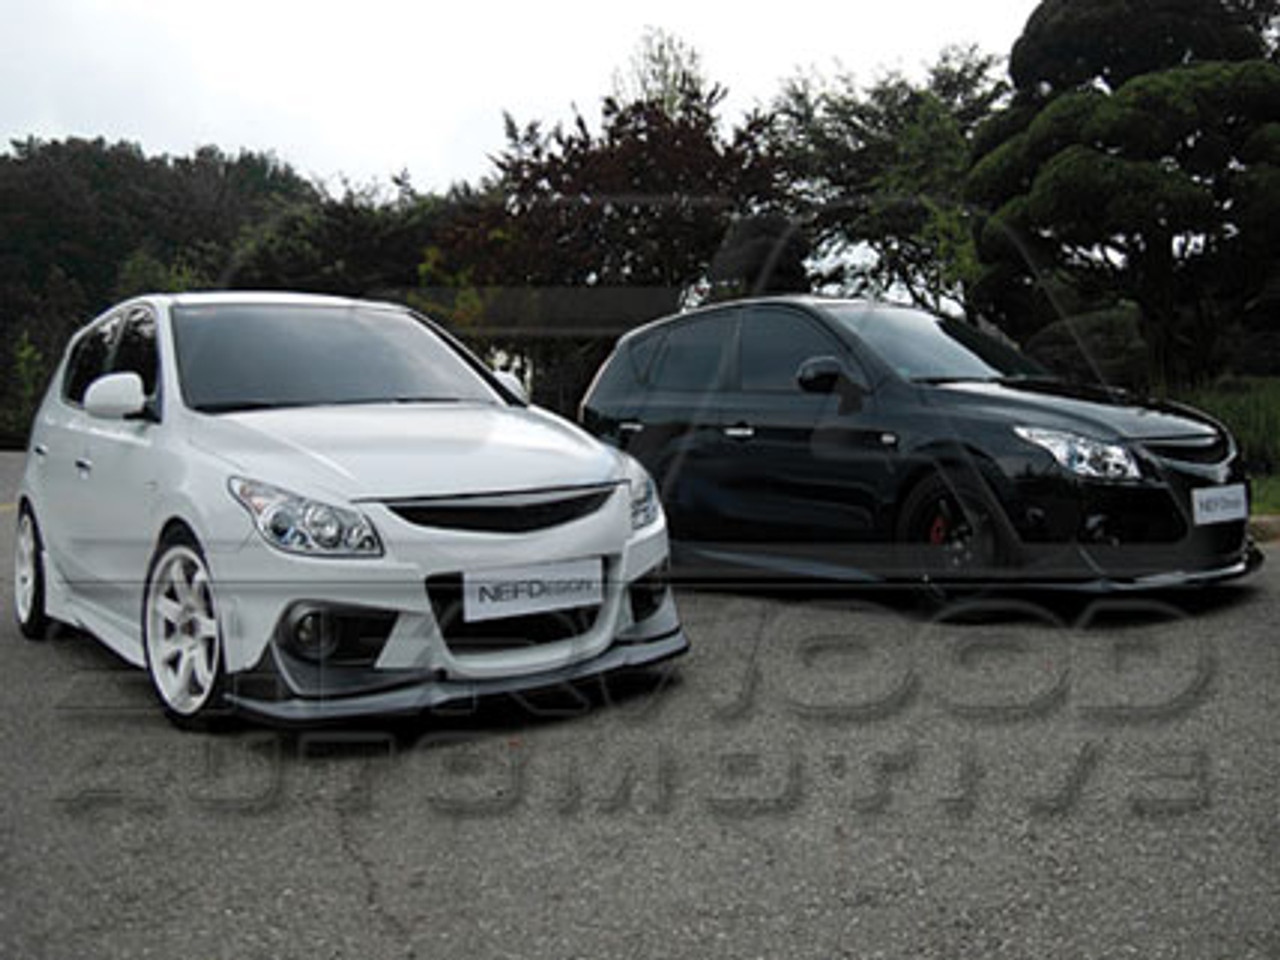 i30 nefd body kit korean auto imports i30 nefd body kit